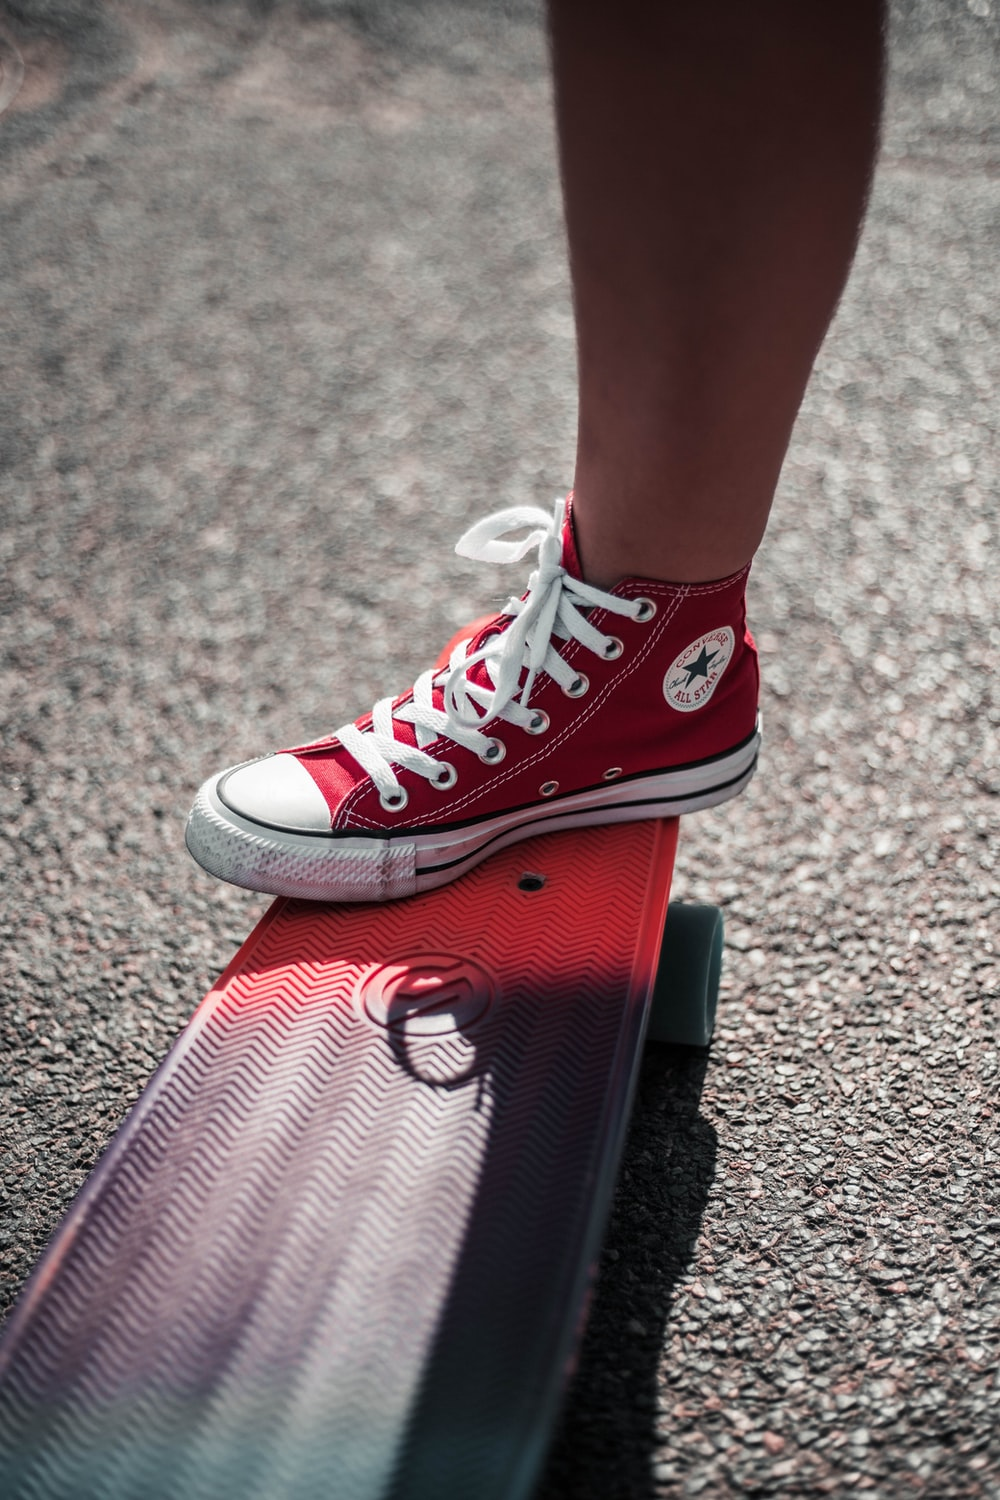 Patentar Desmañado Extra  person wearing red Converse All-Star high-top shoe photo – Free Clothing  Image on Unsplash